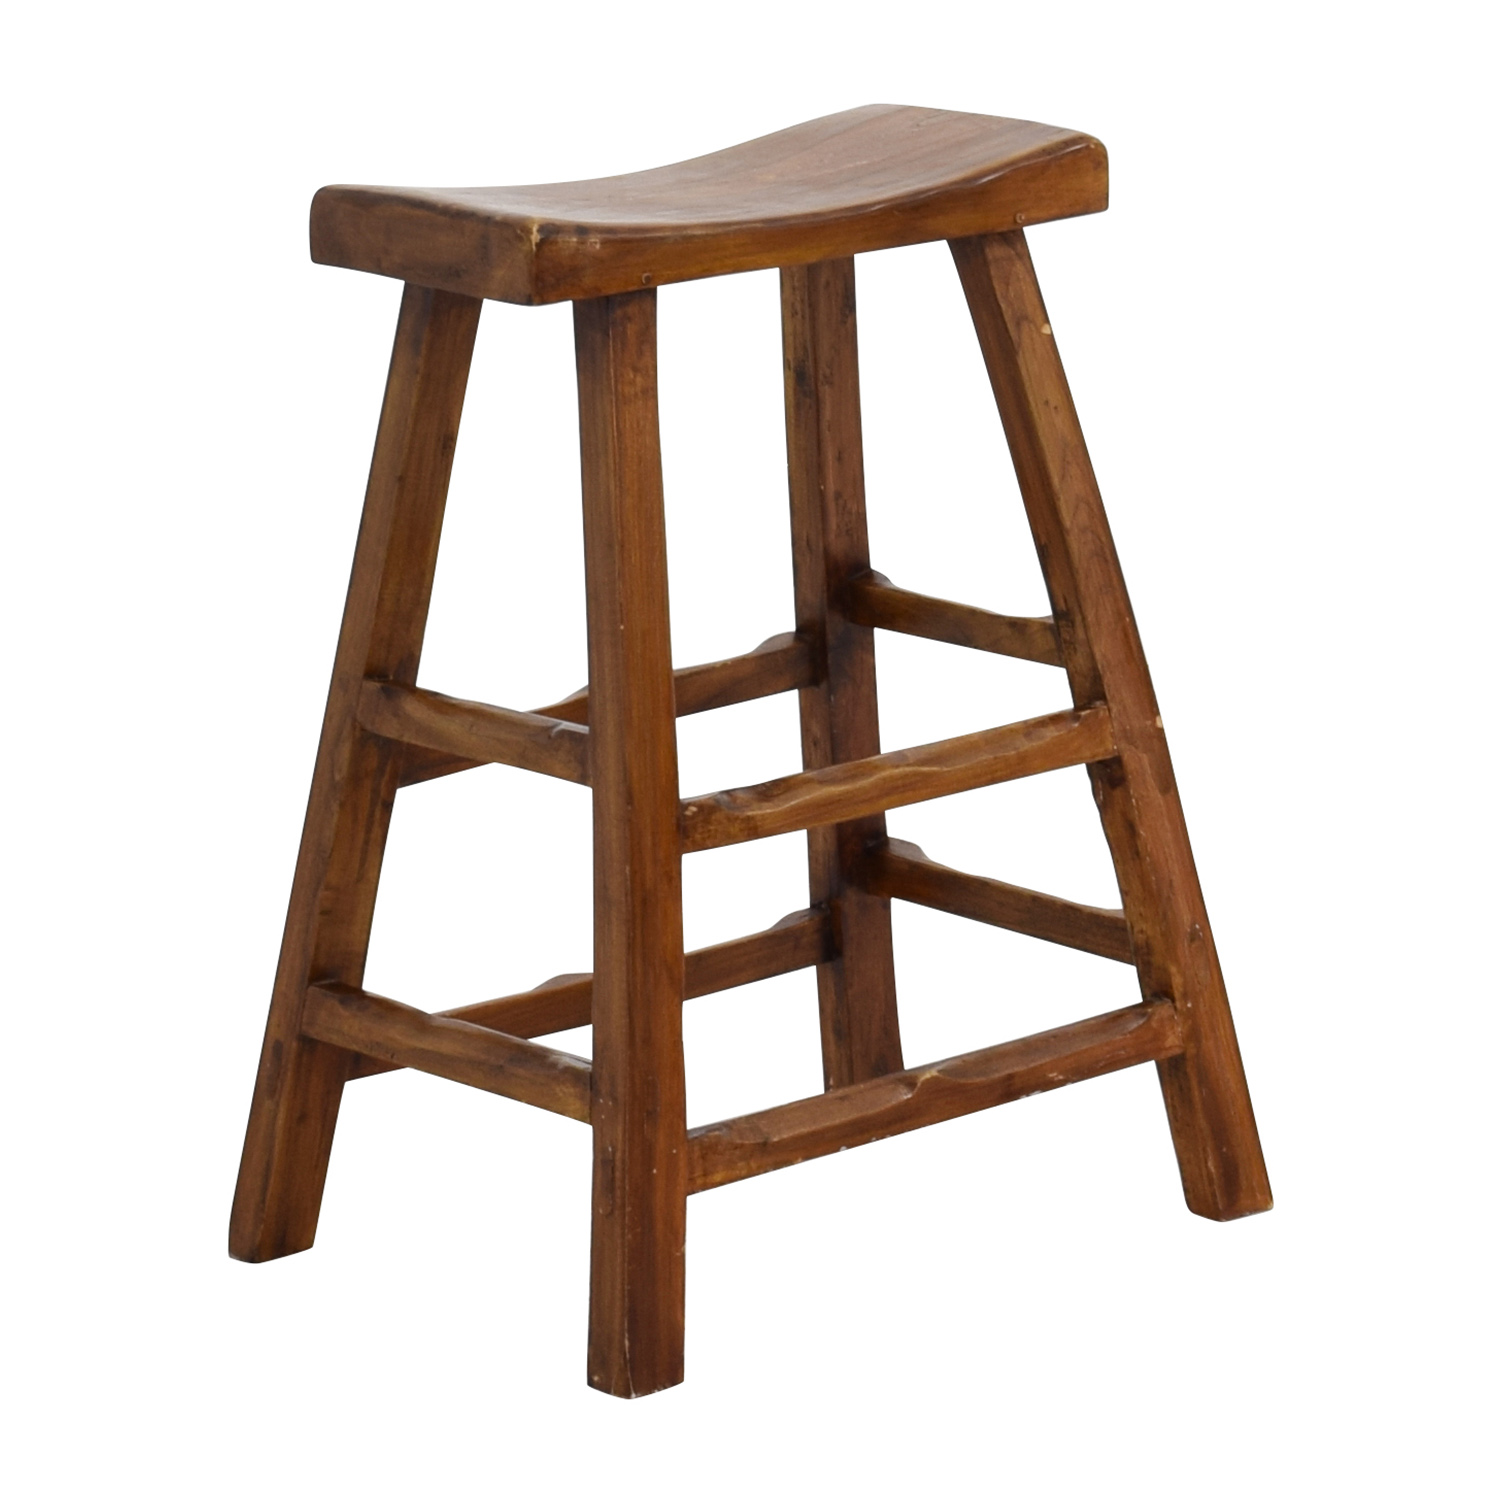 Rustic Stools Kitchens 55 Off Rustic Wood Saddle Seat Counter Stool Chairs